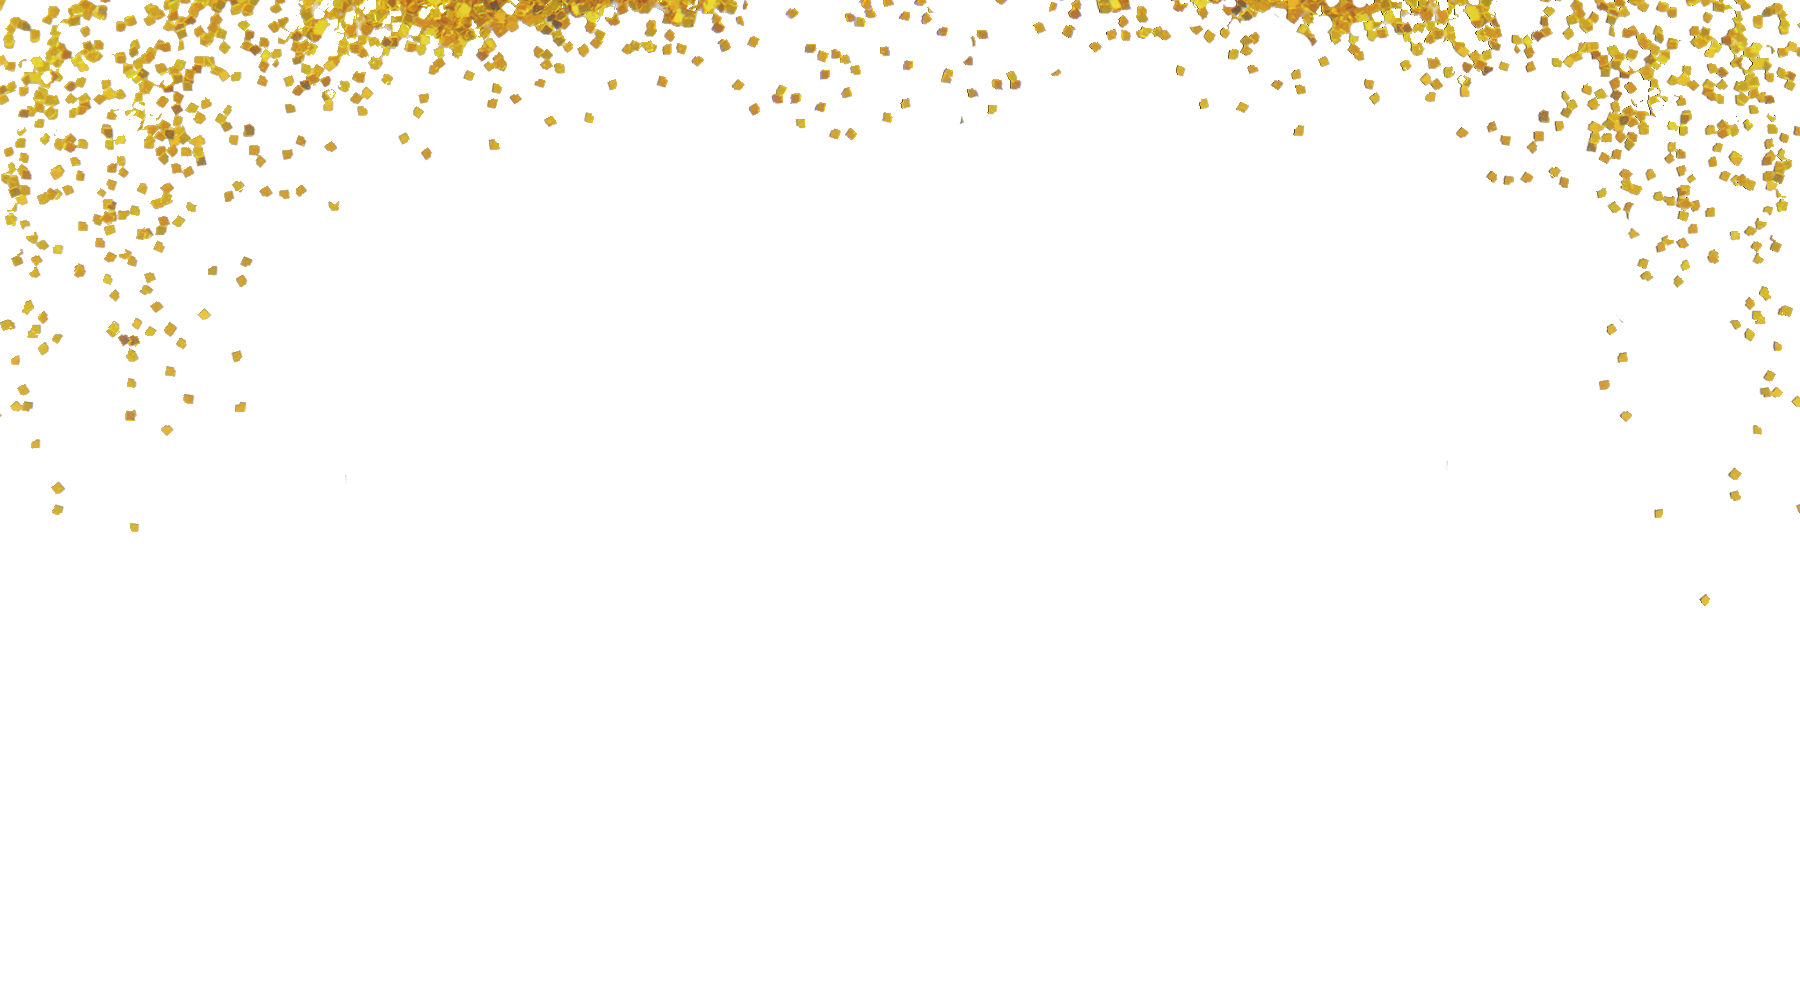 gold glitter, collection glitter vector gold background #25160